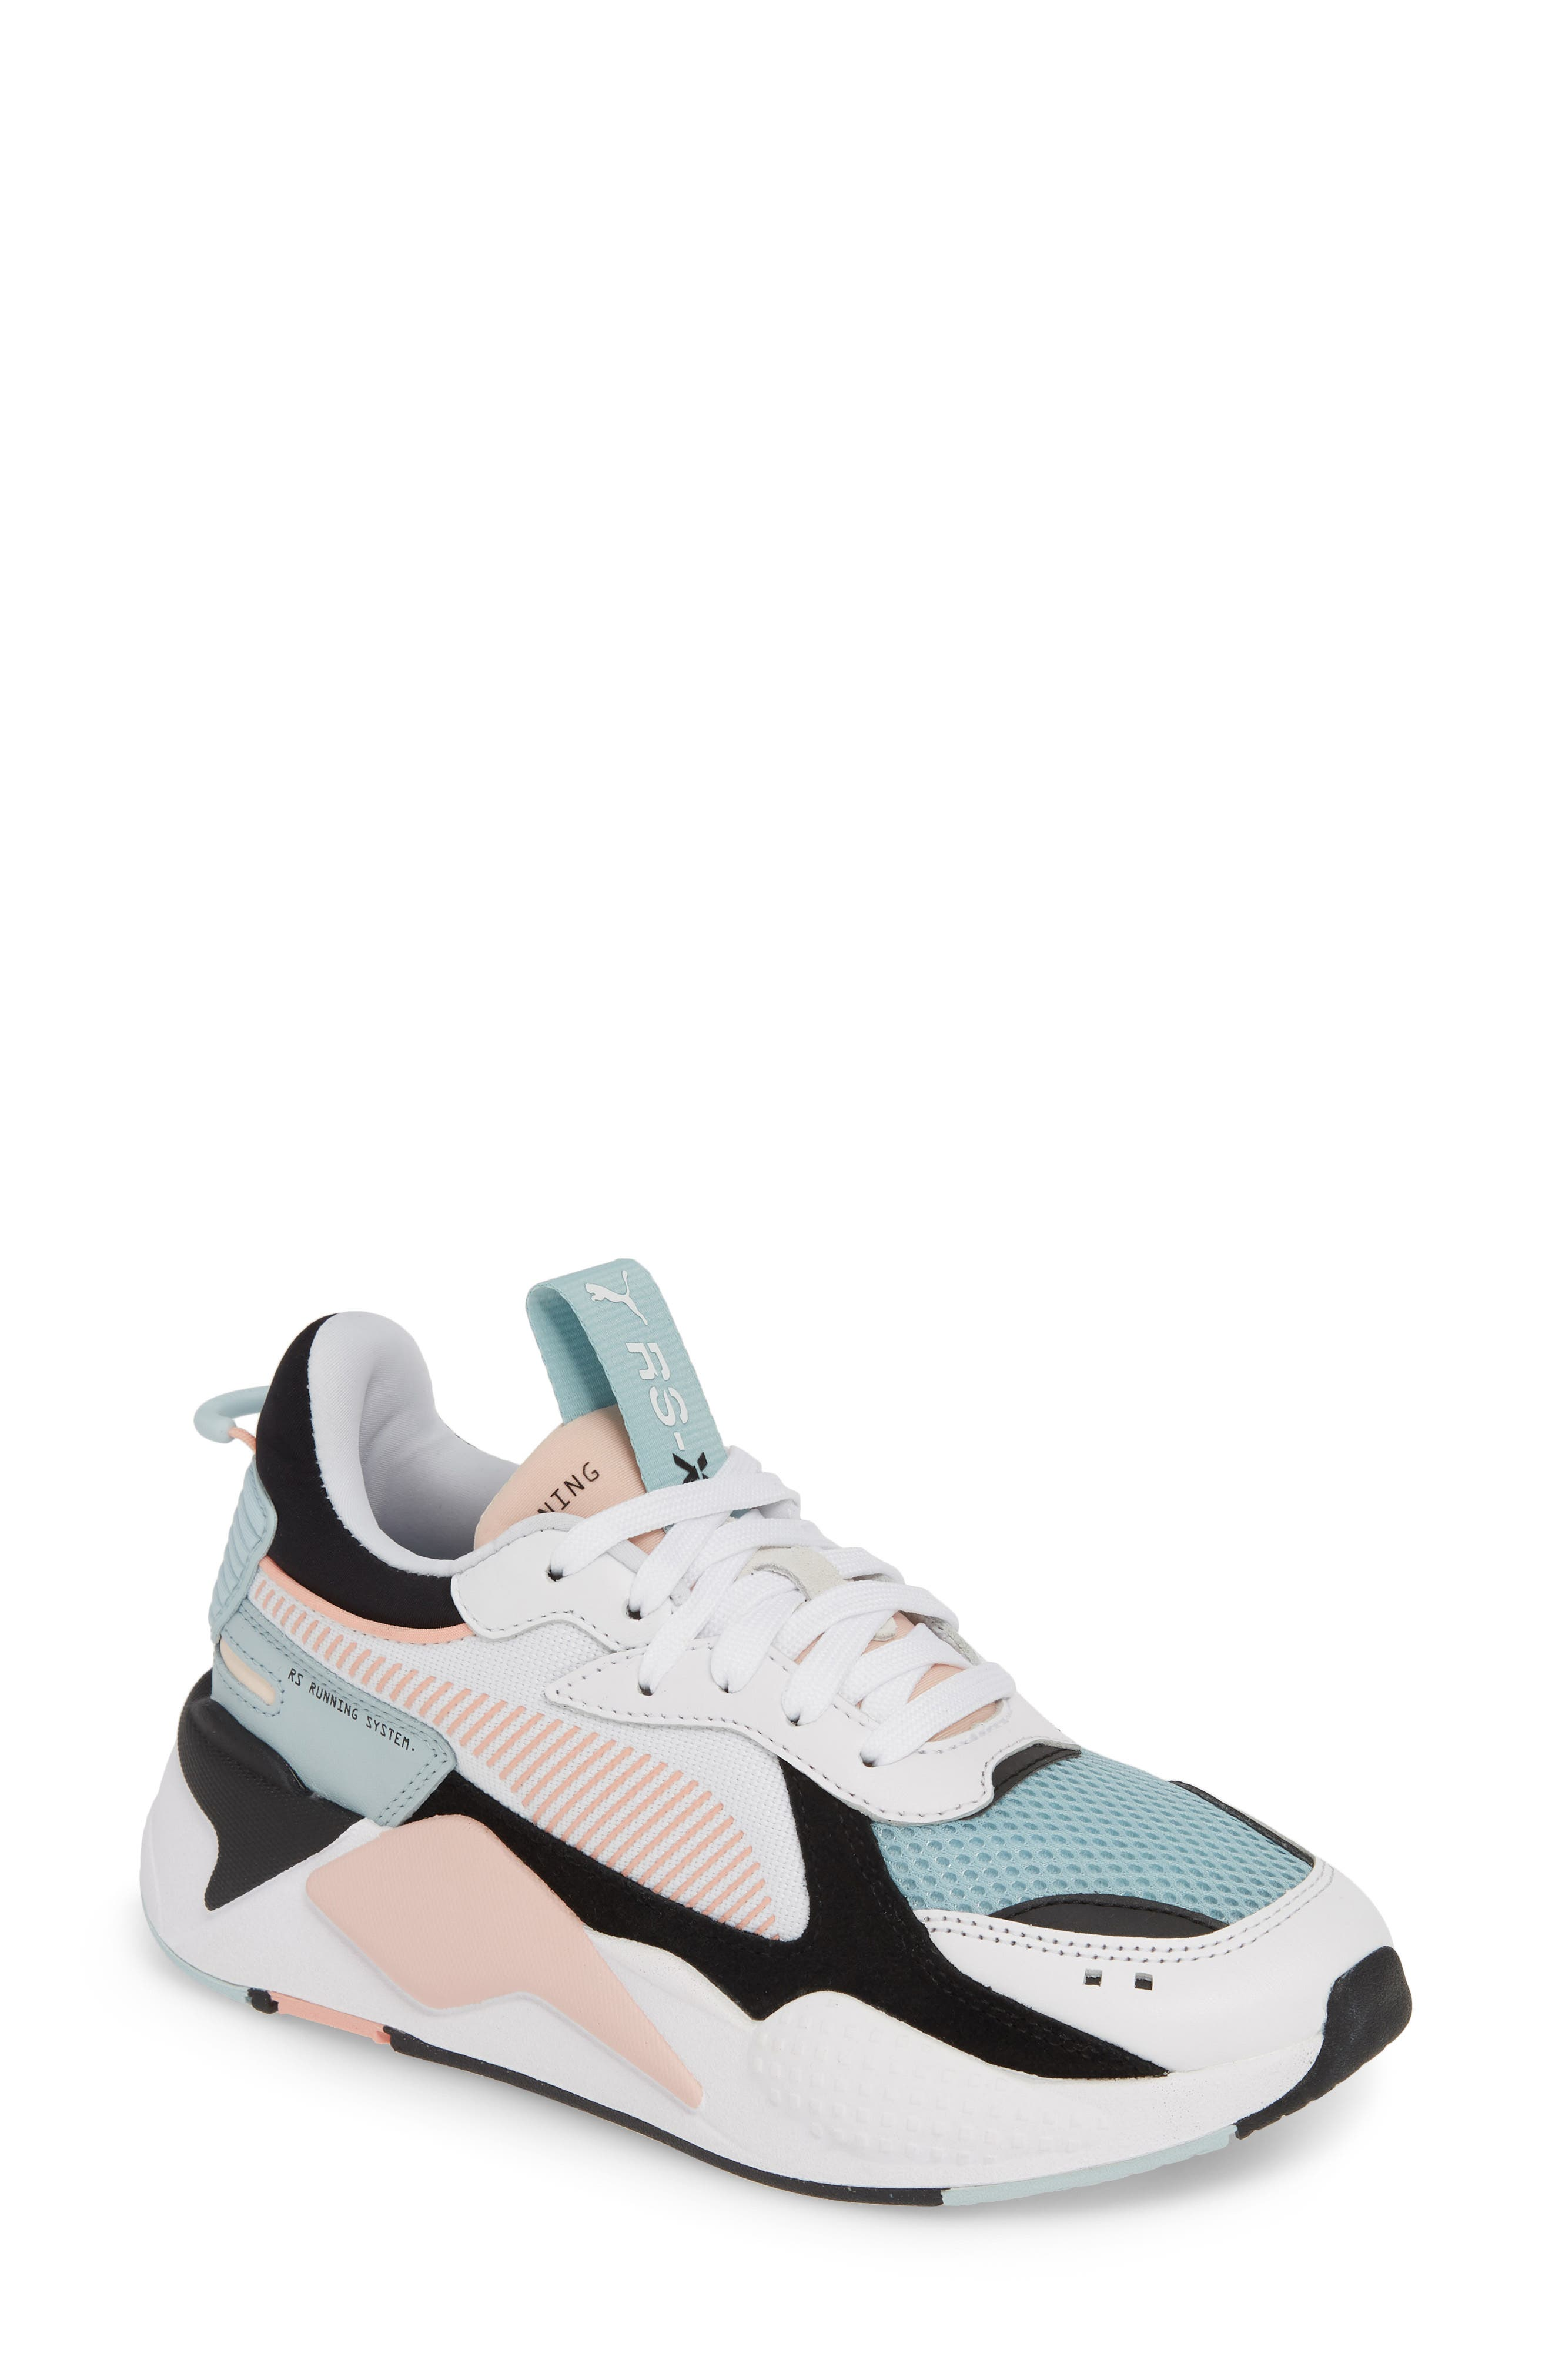 PUMA RS-X Reinvention Sneaker, Main, color, 100